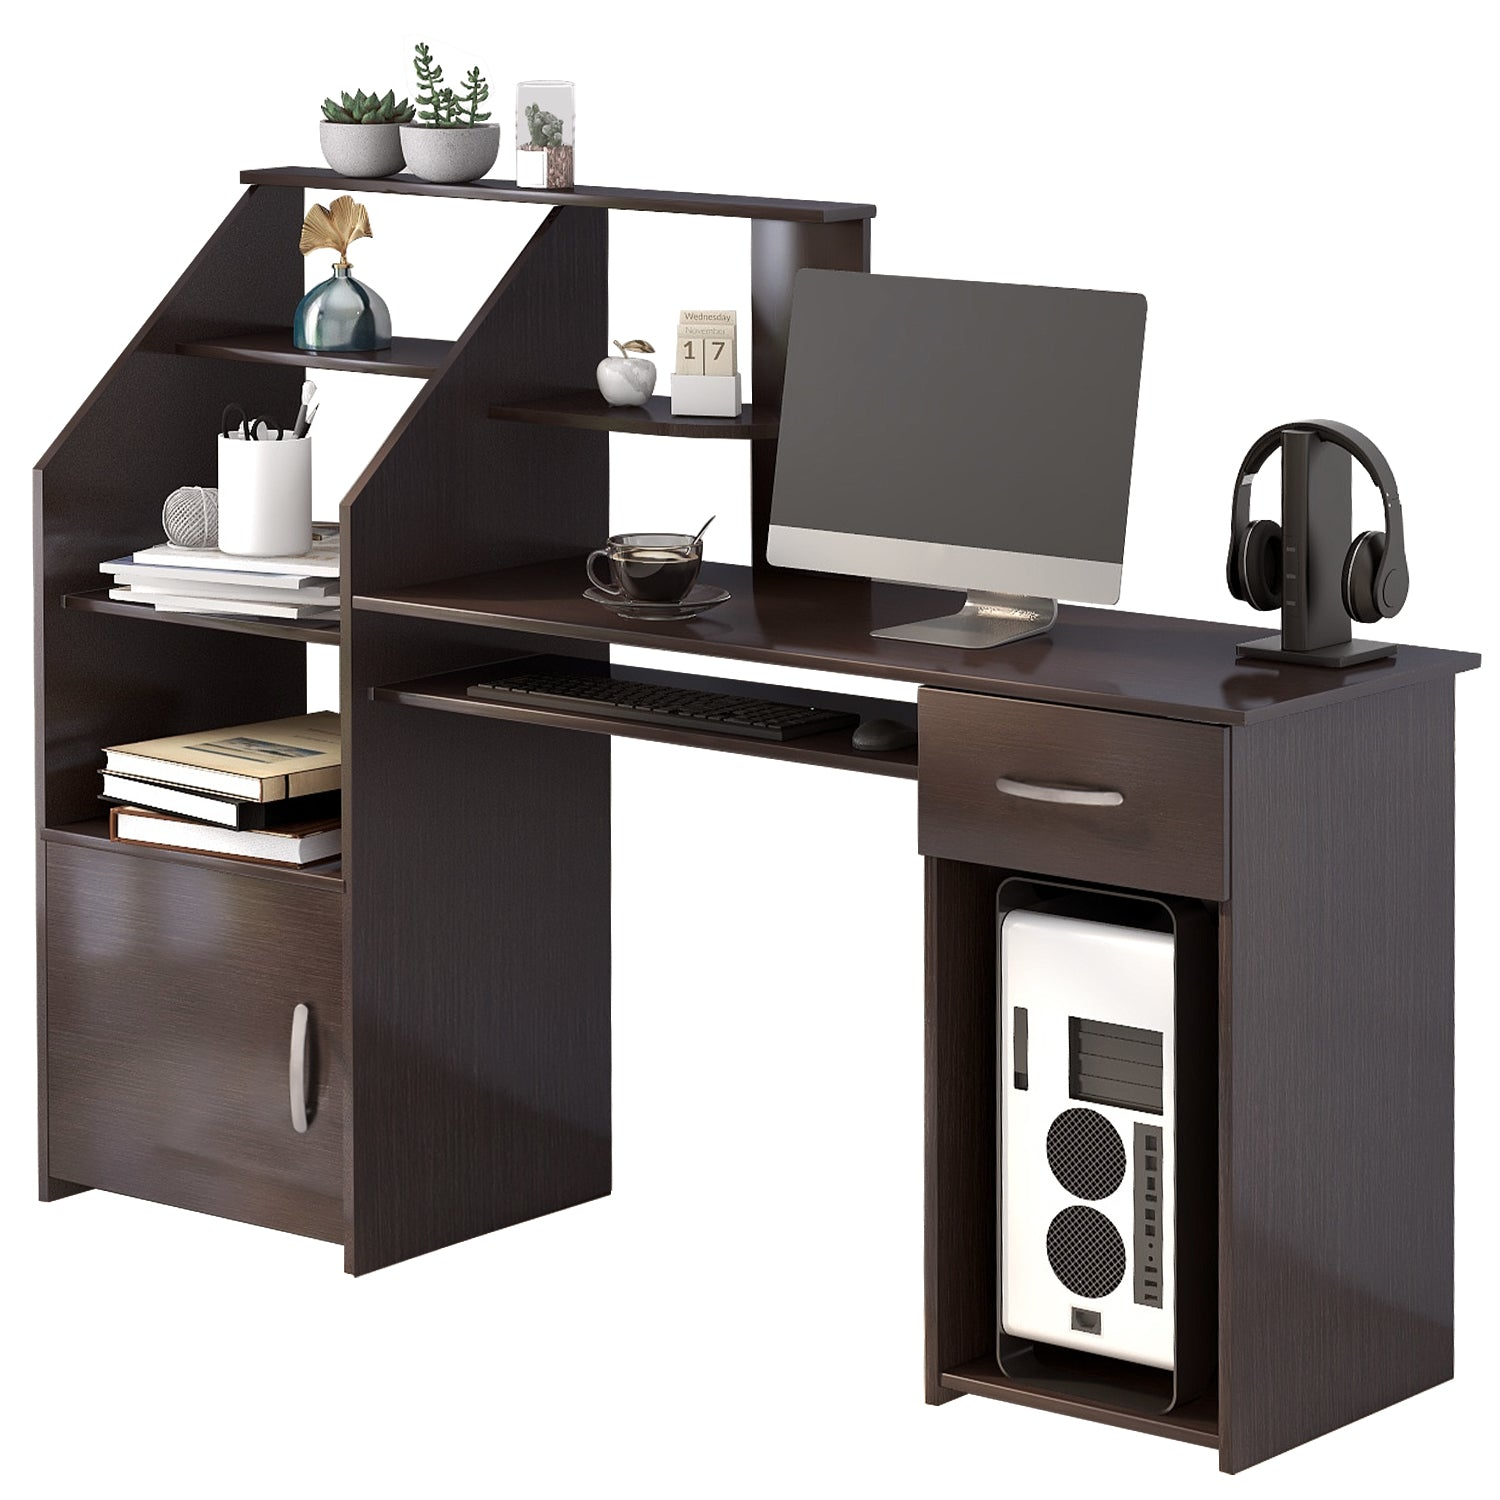 Dark Slate Gray Multi-Functions Computer Desk with Cabinet Espresso BH186907